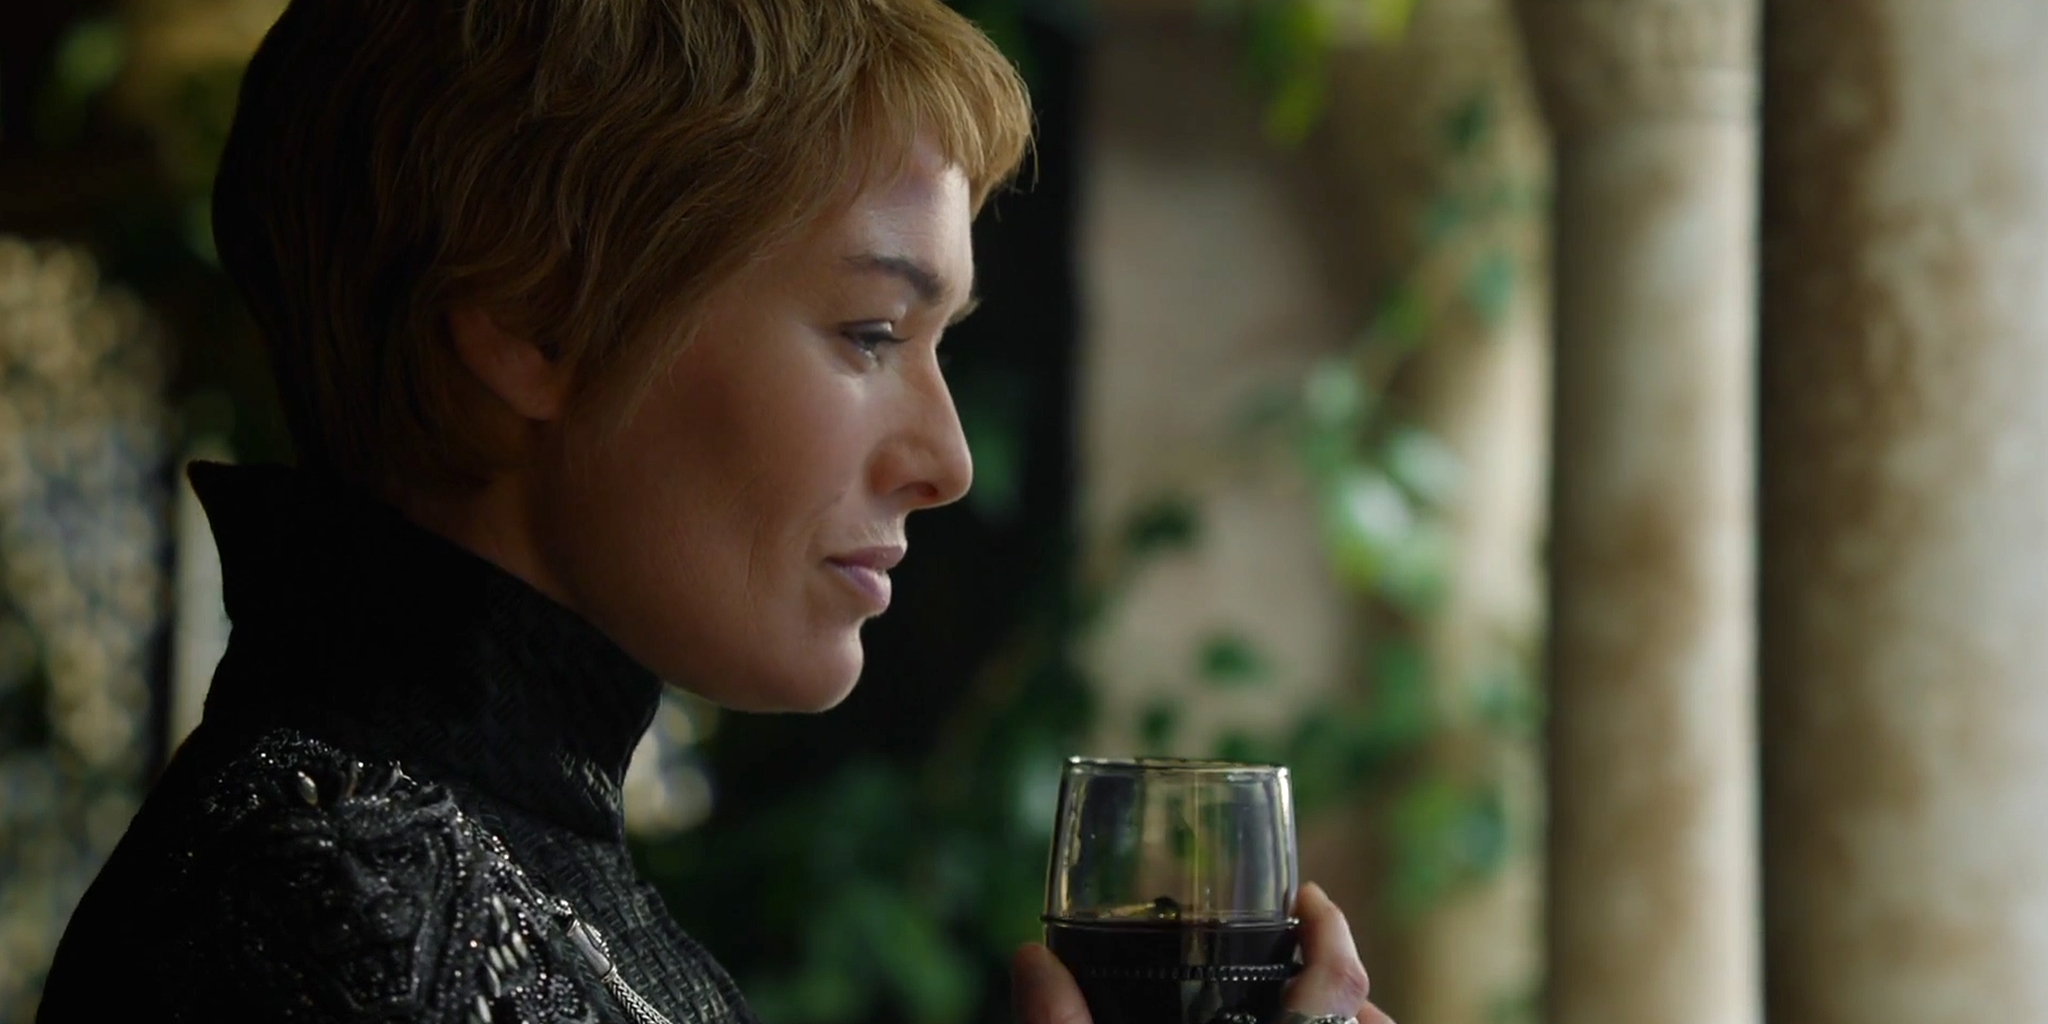 Cersei sipping wine